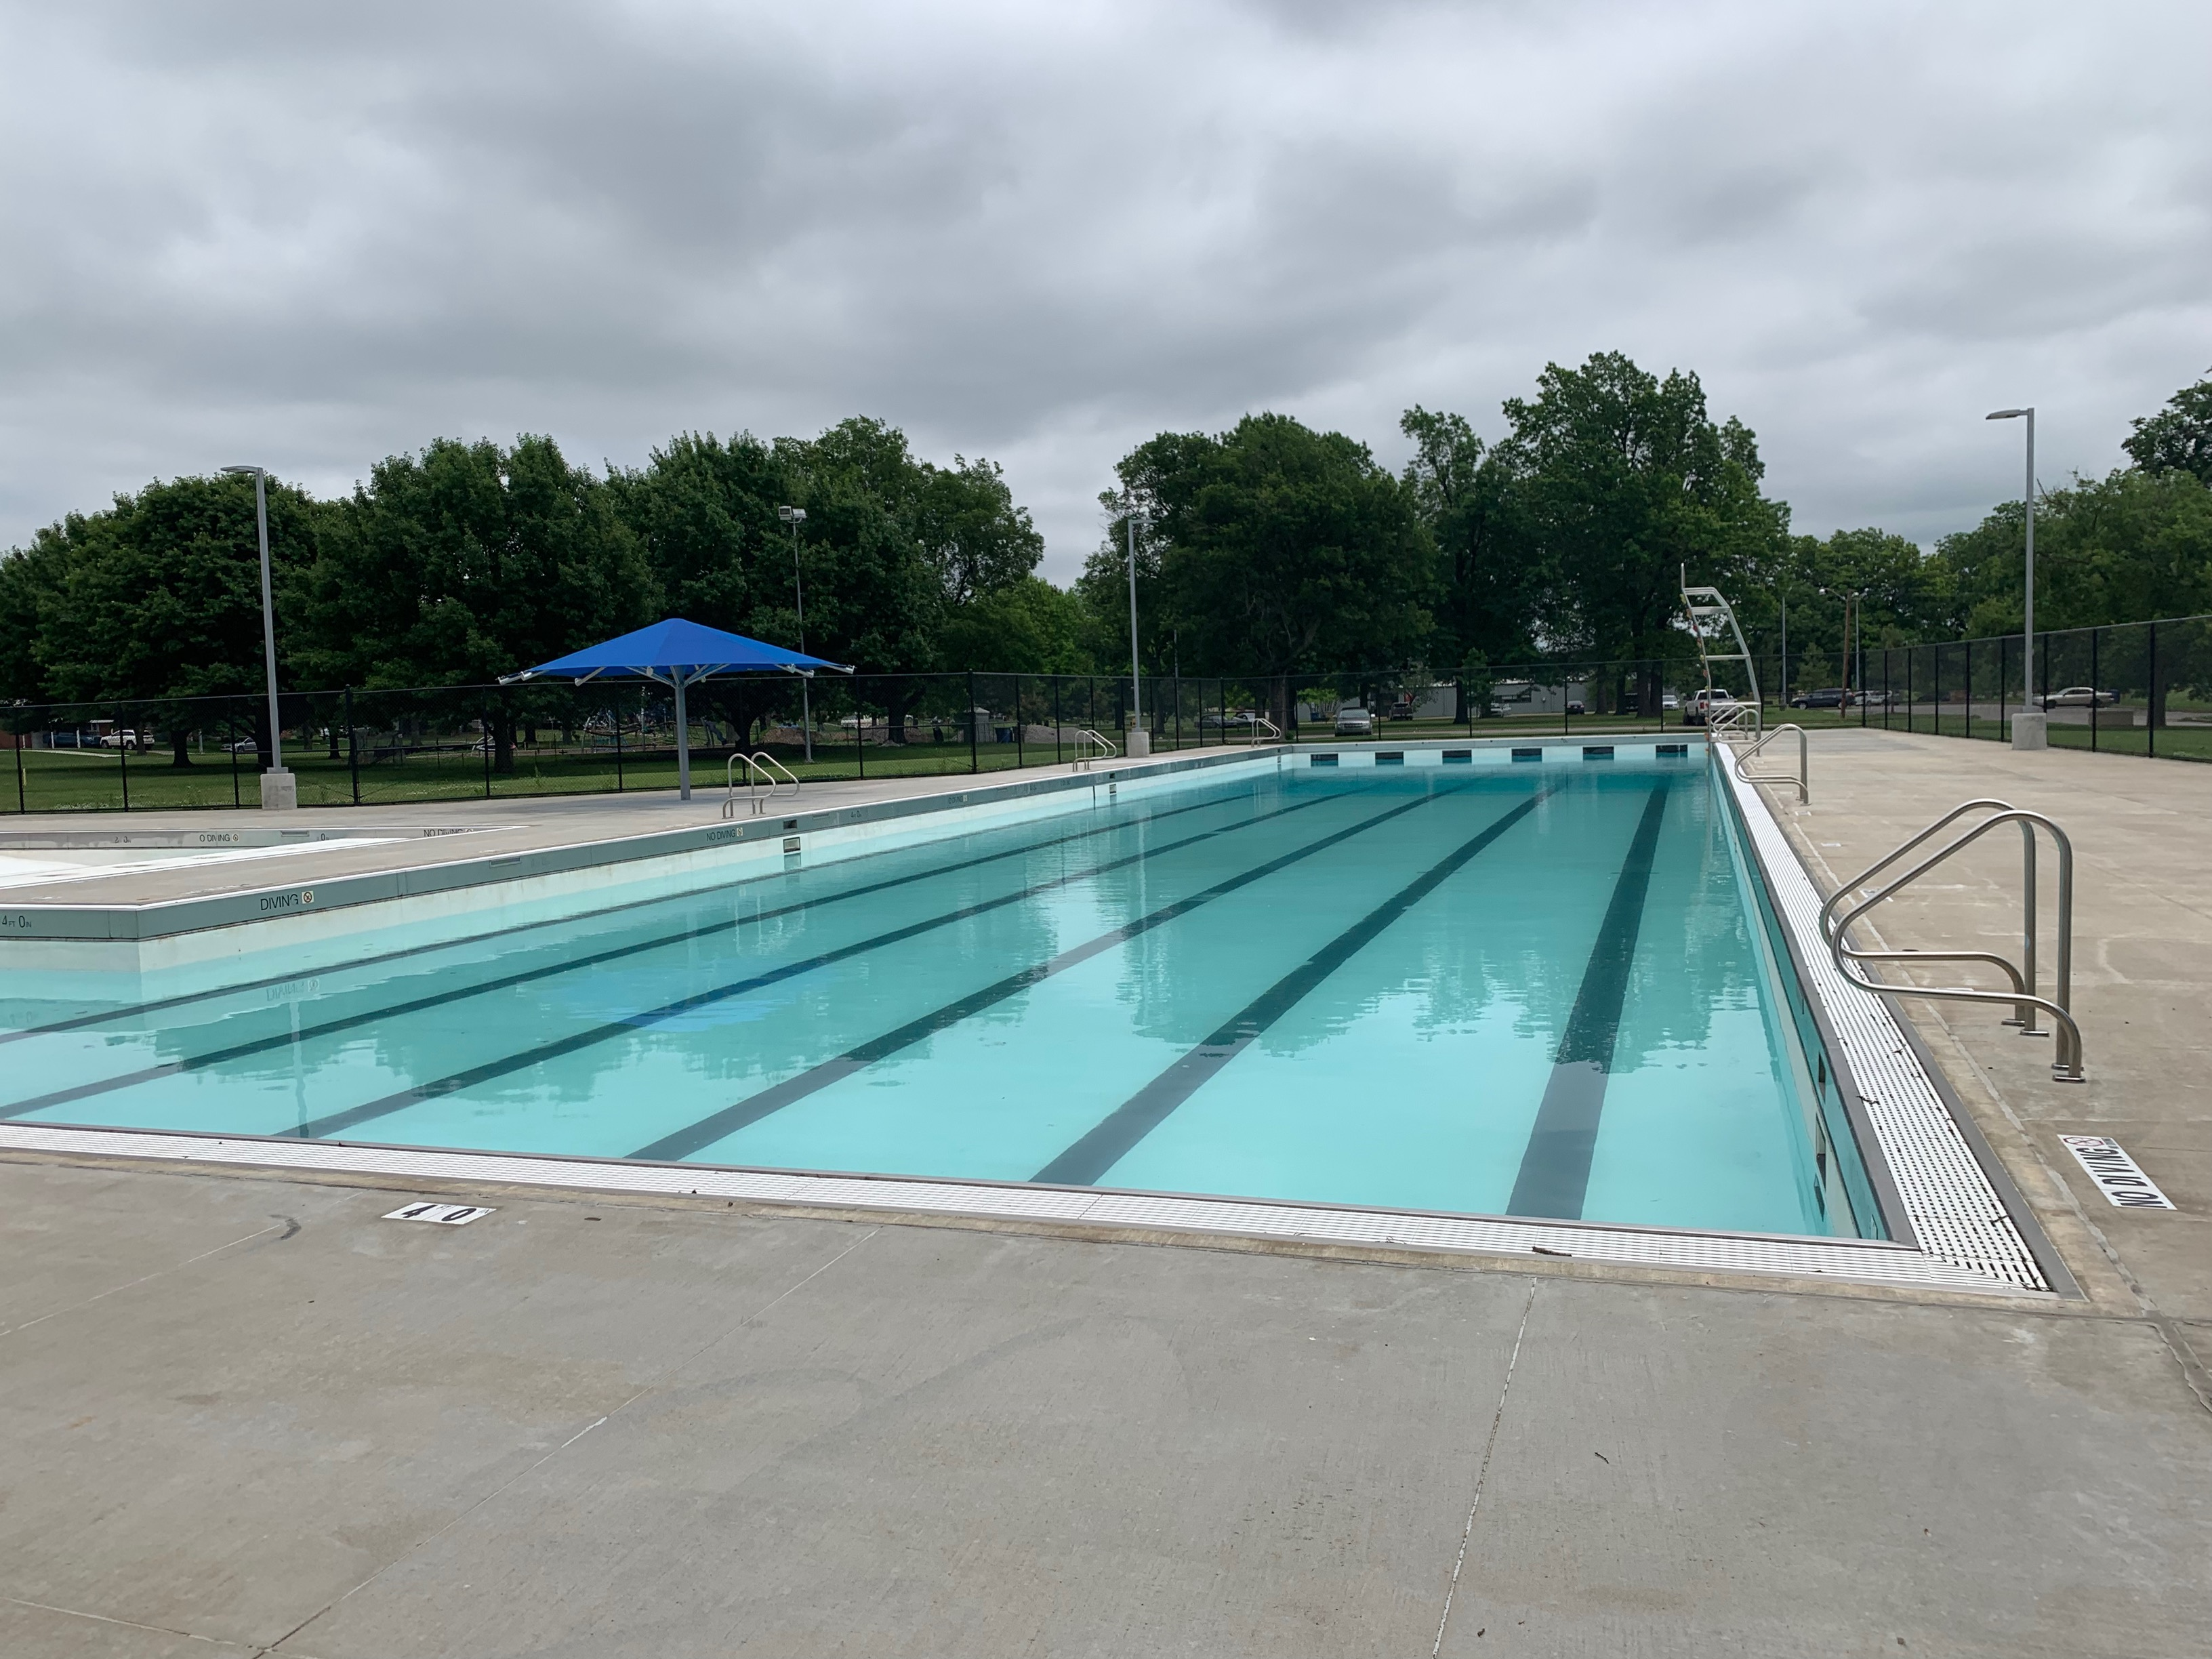 Atlanta to reopen all city pools since COVID-19 pandemic; waive admission fees